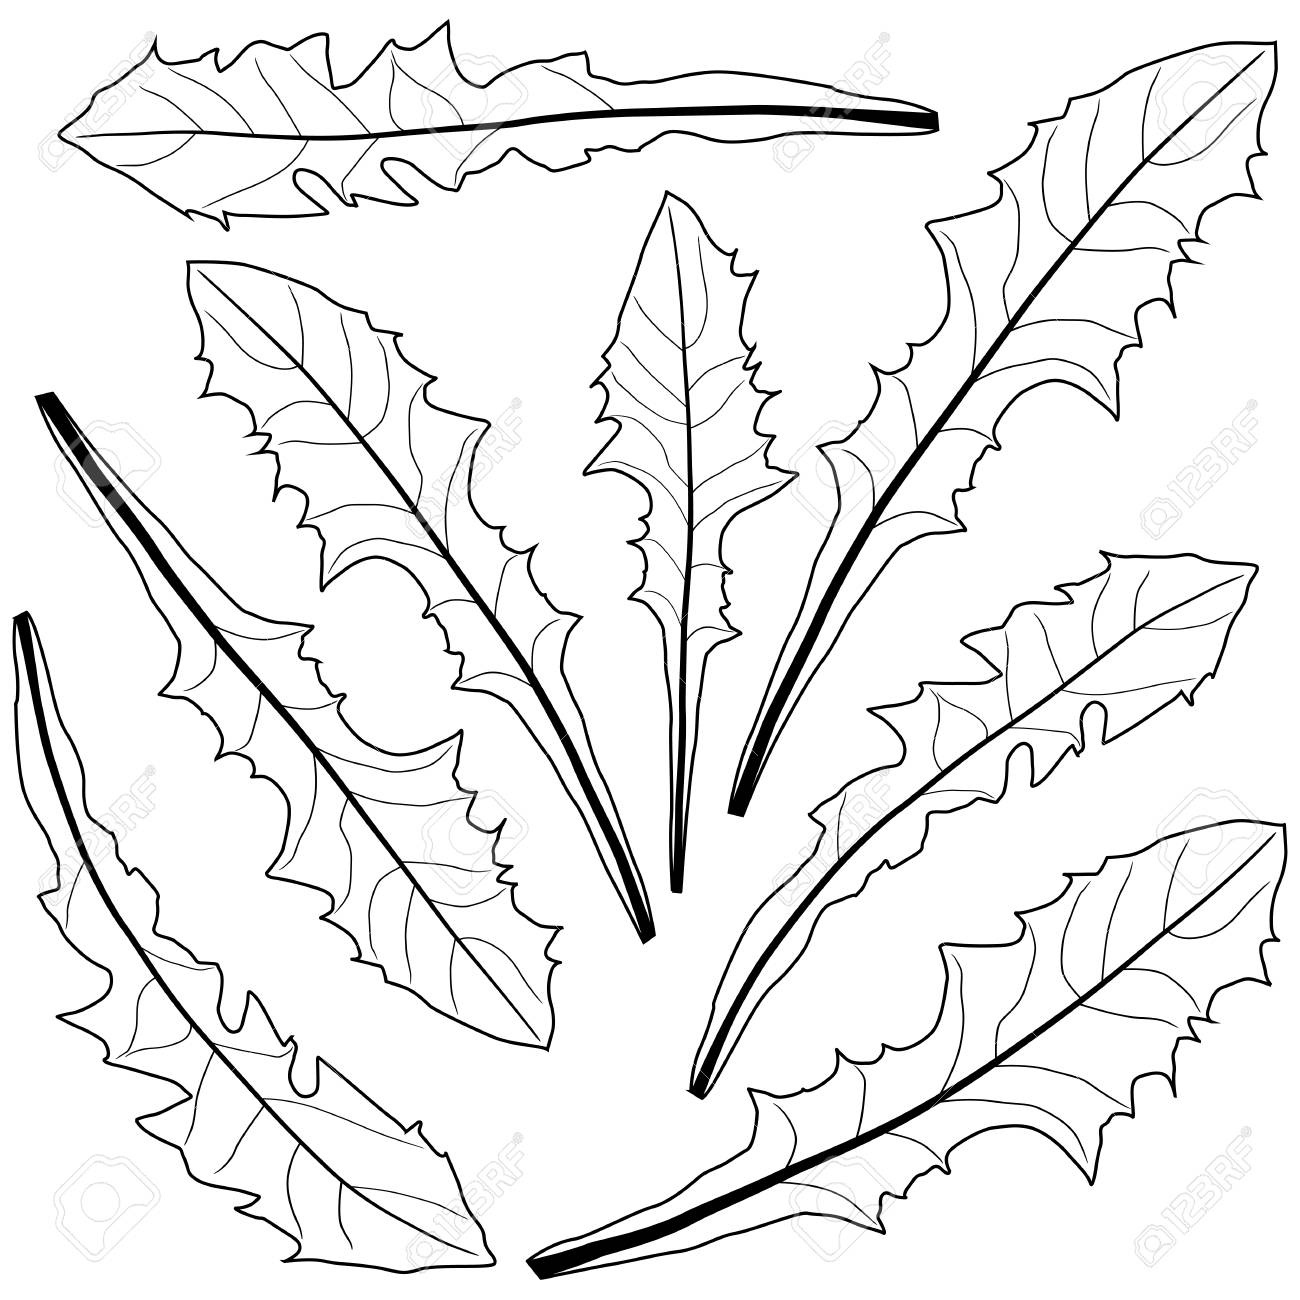 1300x1300 Dandelion Leaves In Black And White Royalty Free Cliparts, Vectors